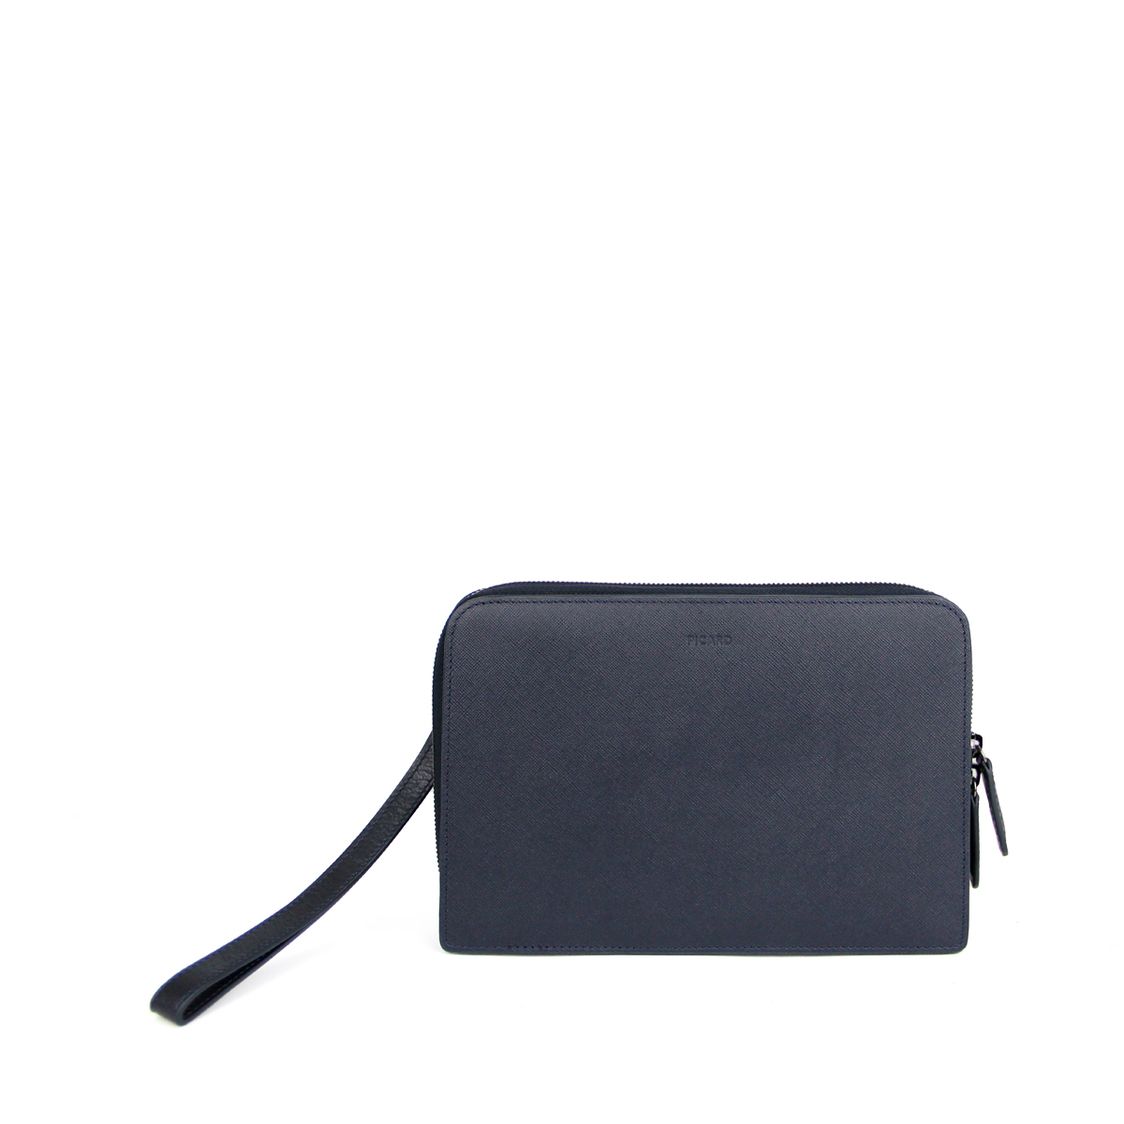 Picard Austin Clutch Bag Navy